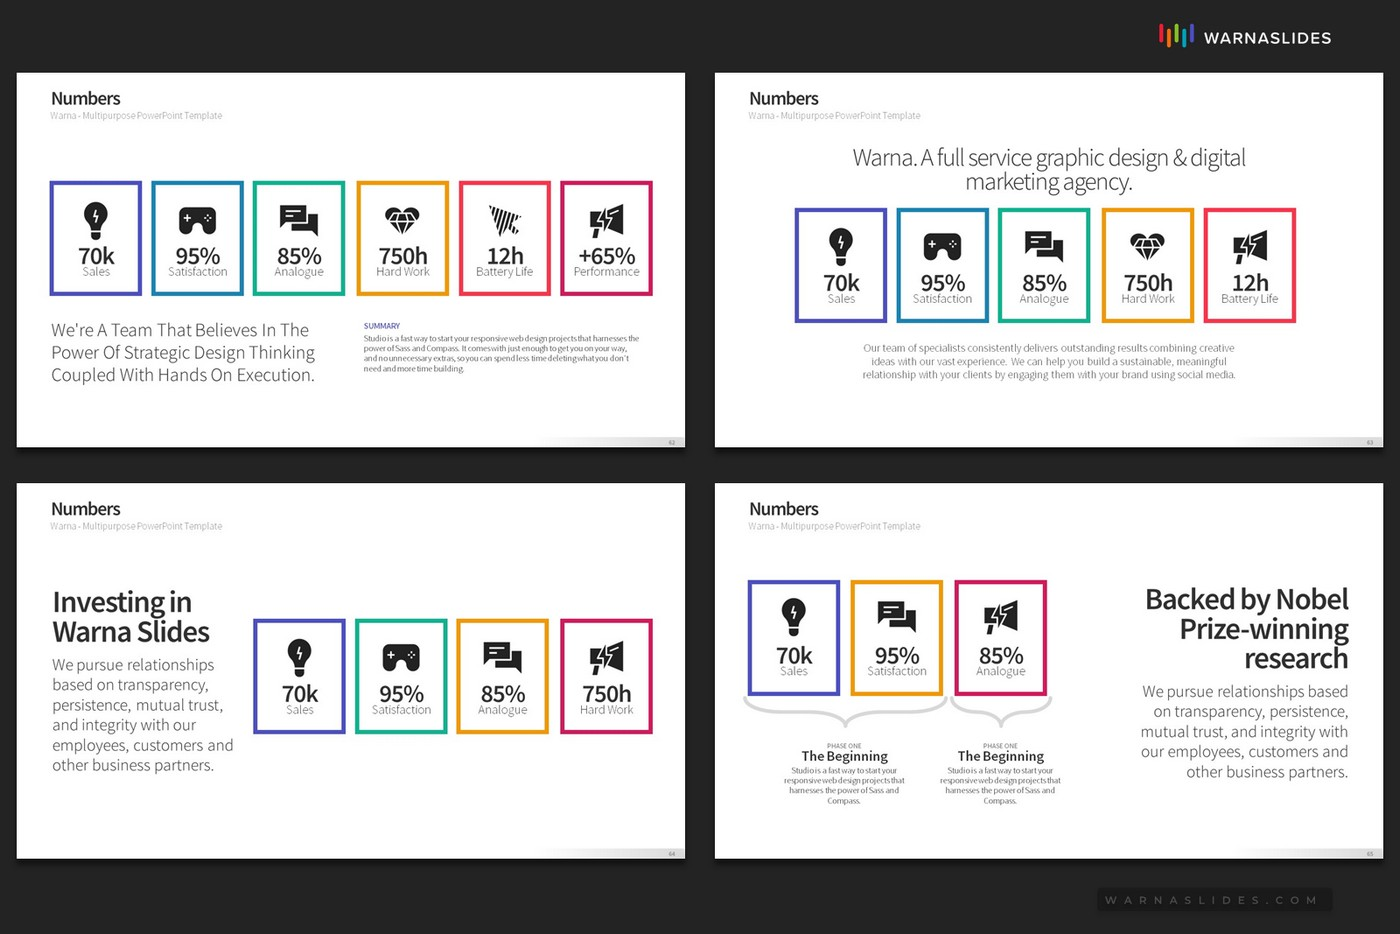 Data-Infographic-Demographic-PowerPoint-Template-for-Business-Pitch-Deck-Professional-Creative-PowerPoint-Icons-013